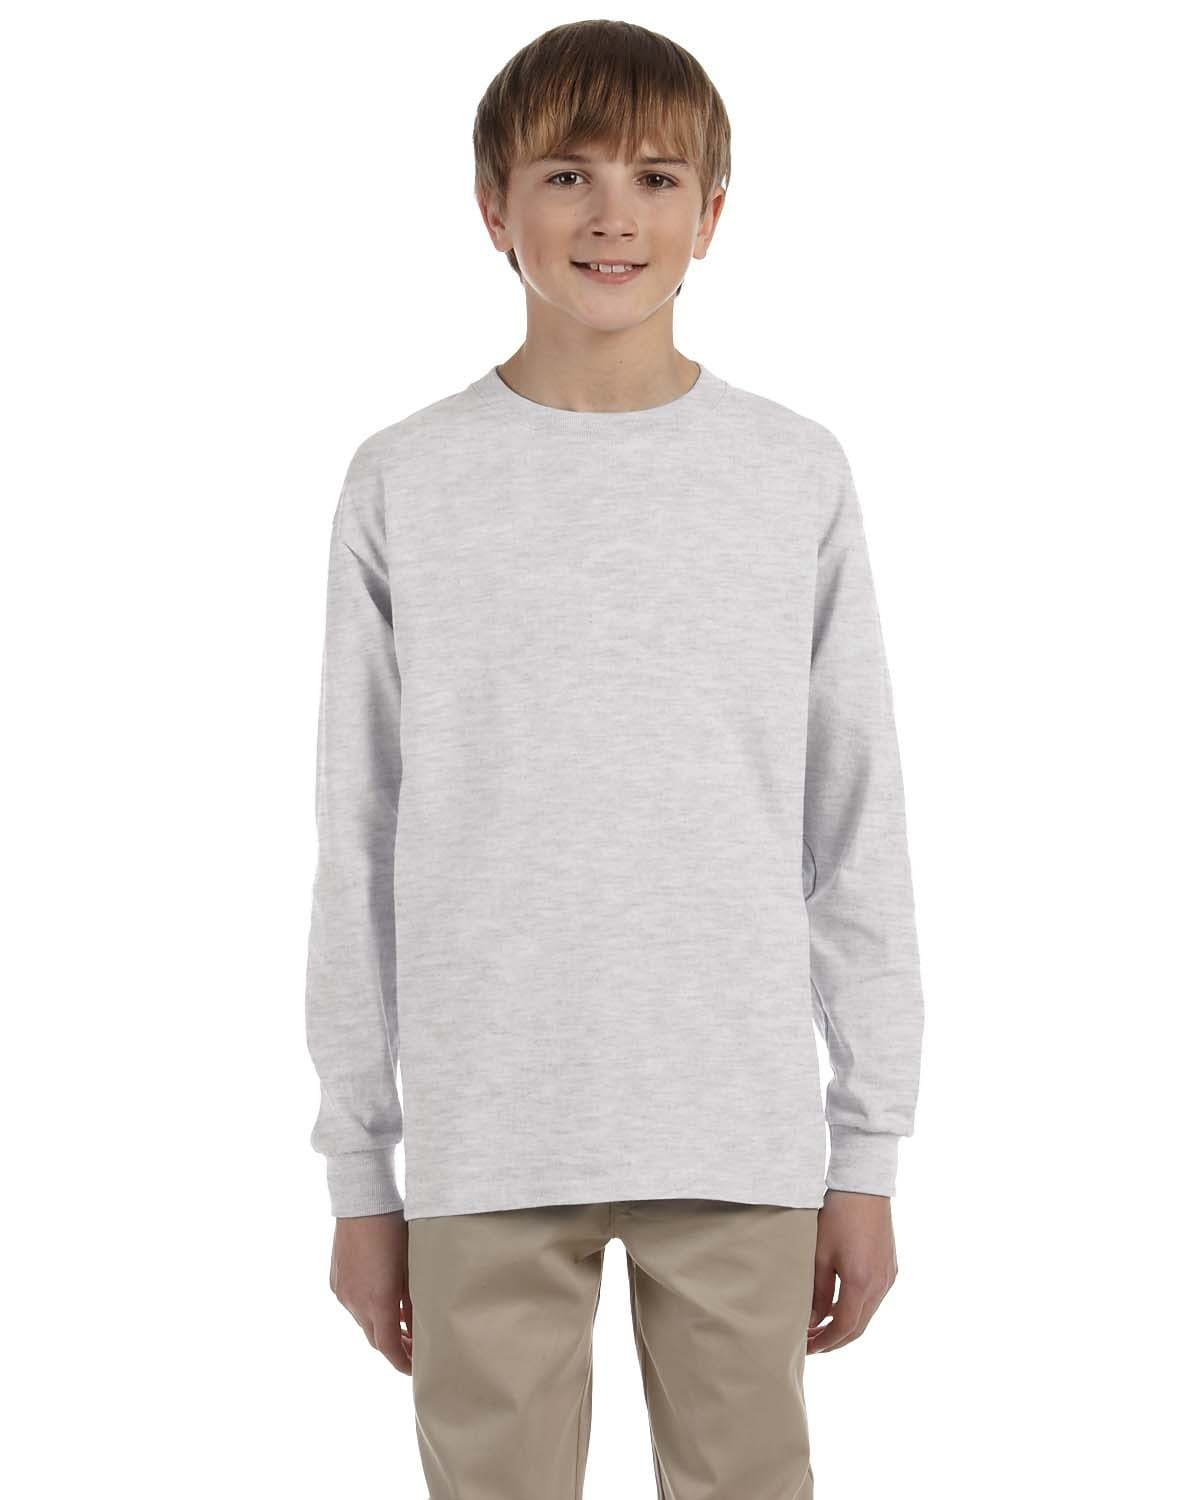 g240b-youth-ultra-cotton-6-oz-long-sleeve-t-shirt-Small-ASH GREY-Oasispromos